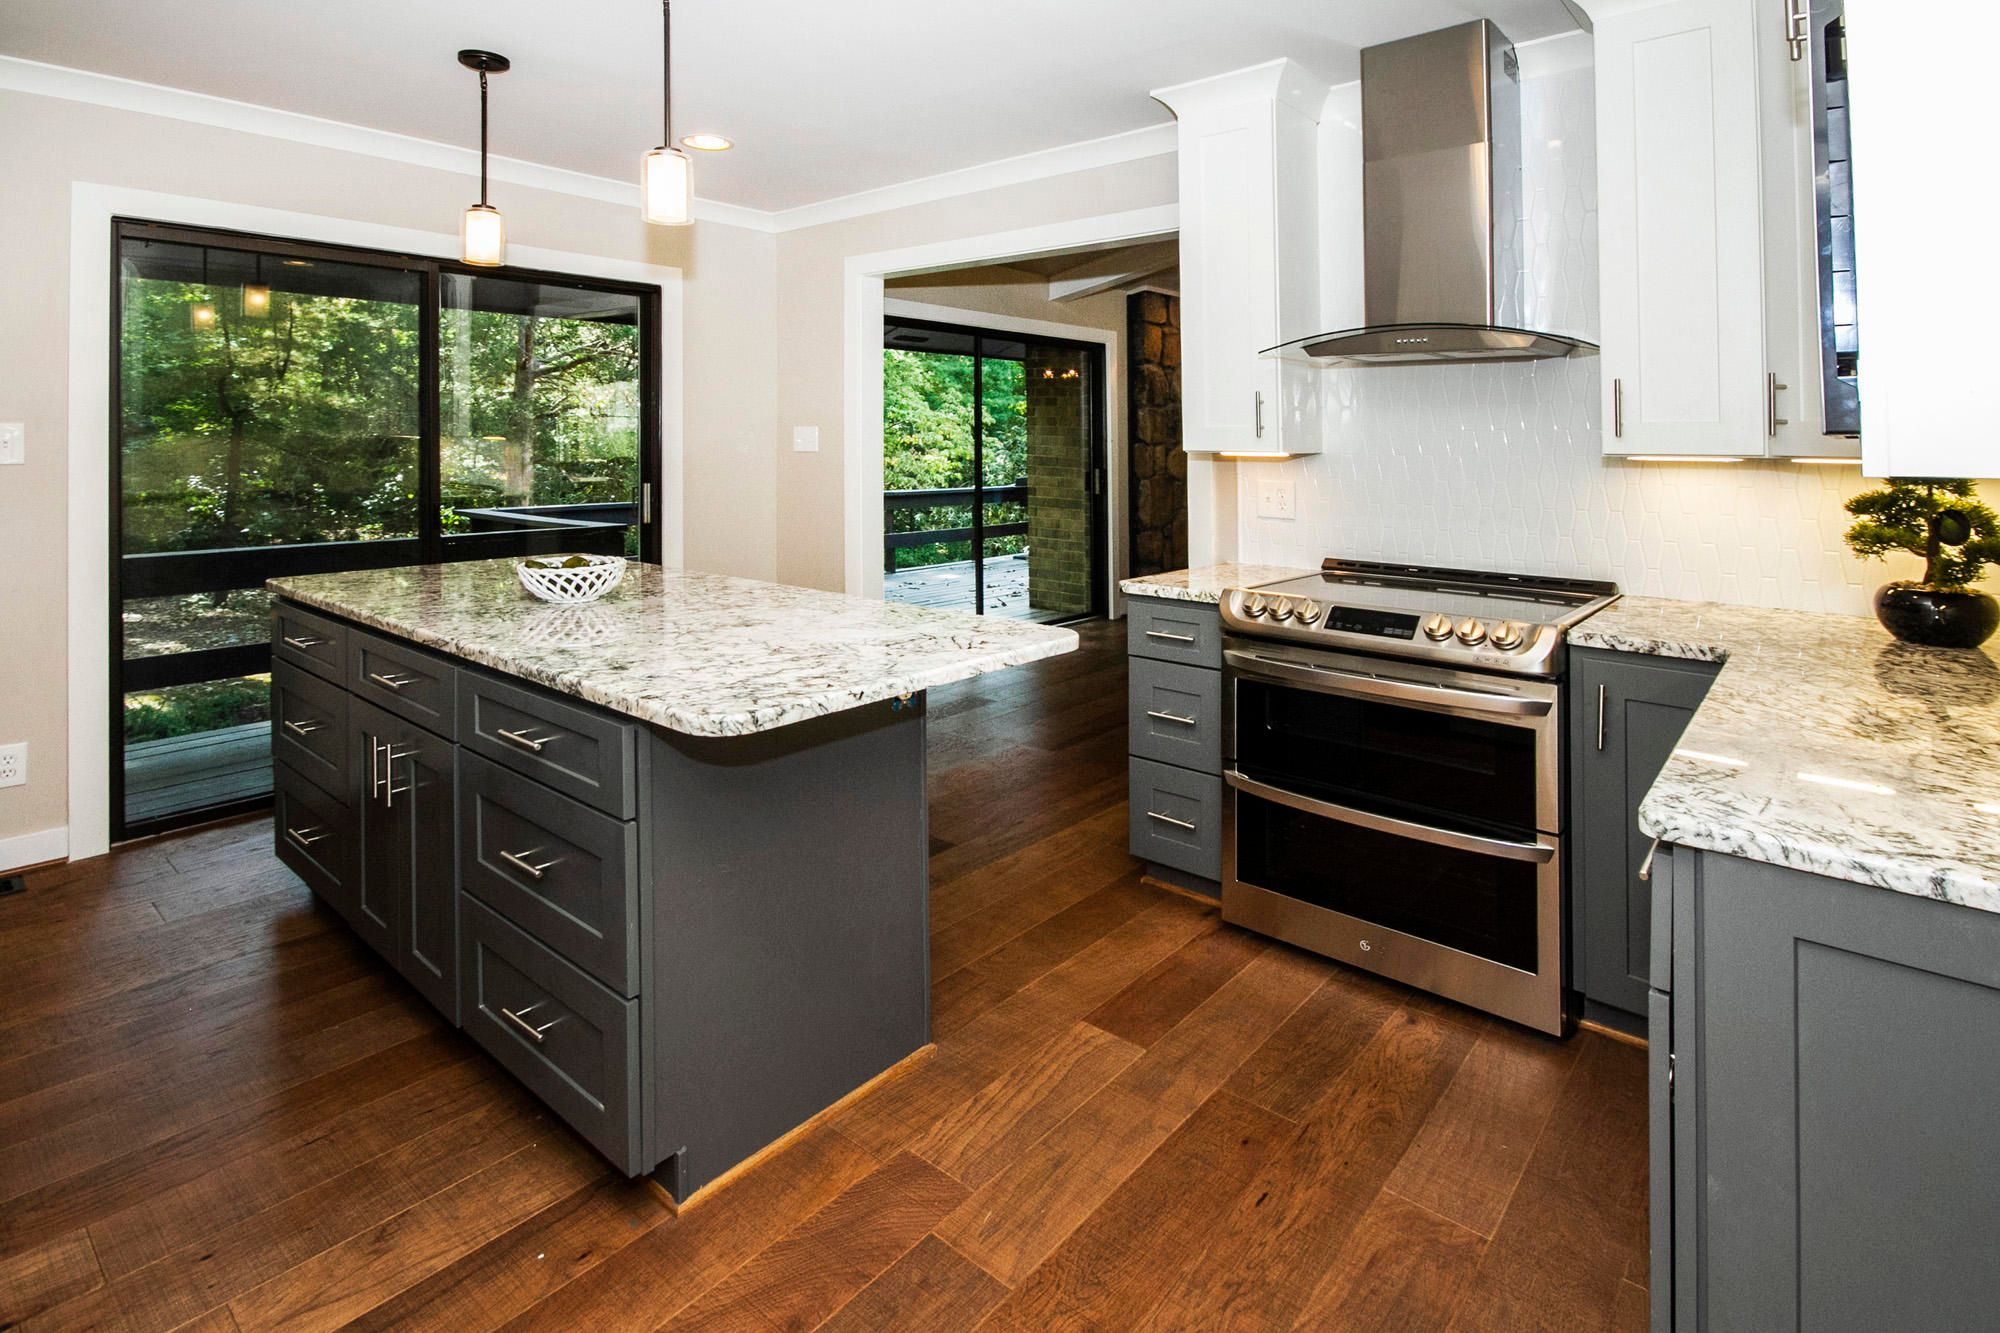 Kitchen showing double oven